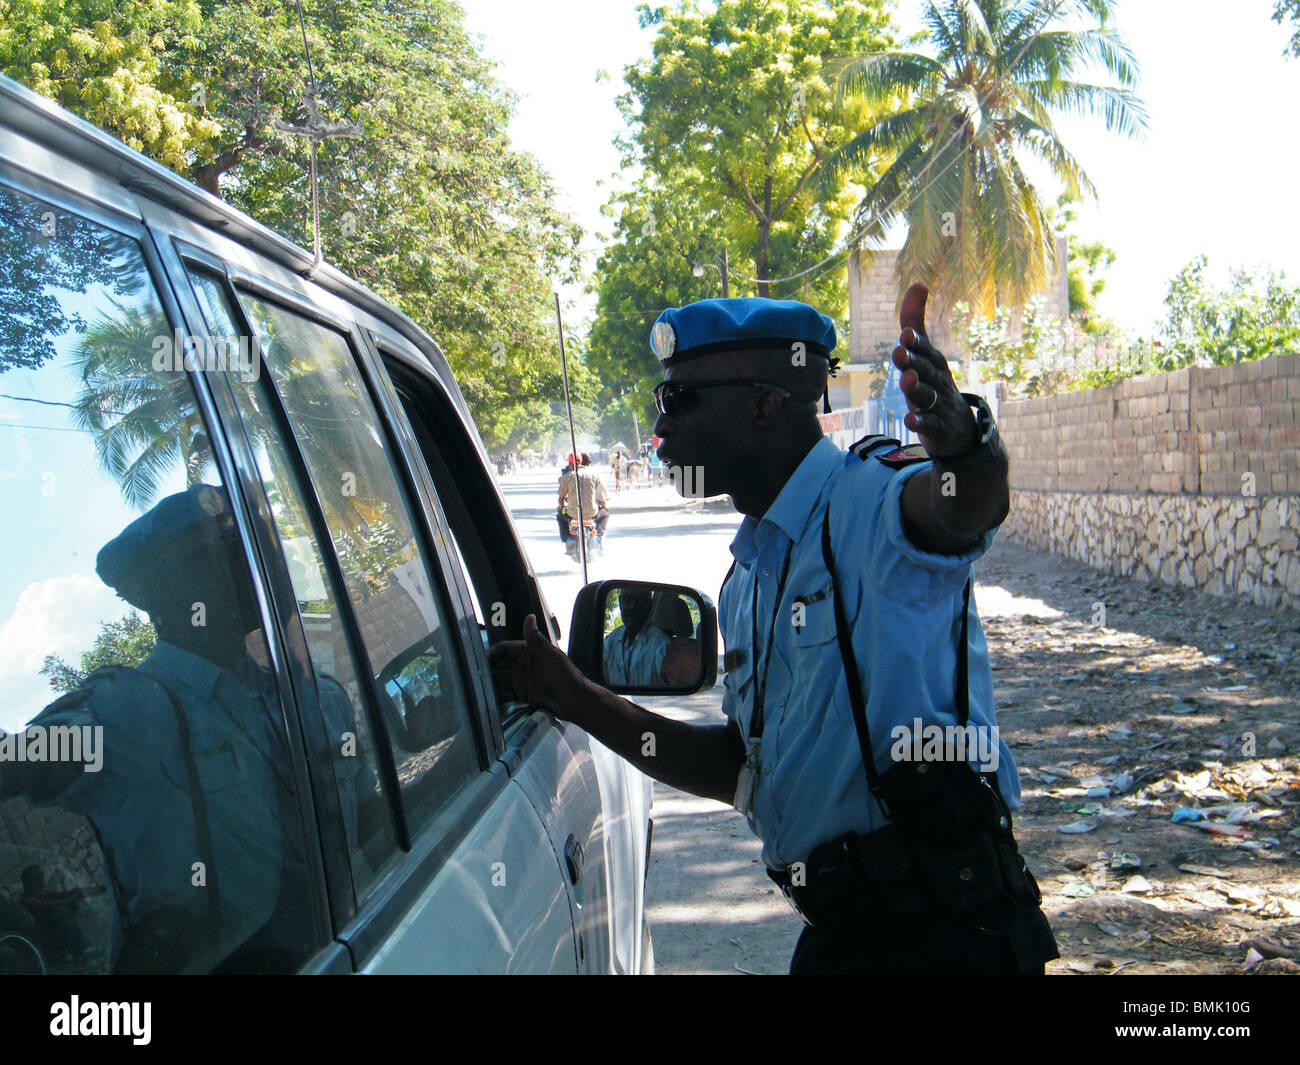 A Haitian policeman stops a driver at a roadblock on the outskirts of Gonaives, Haiti - Stock Image